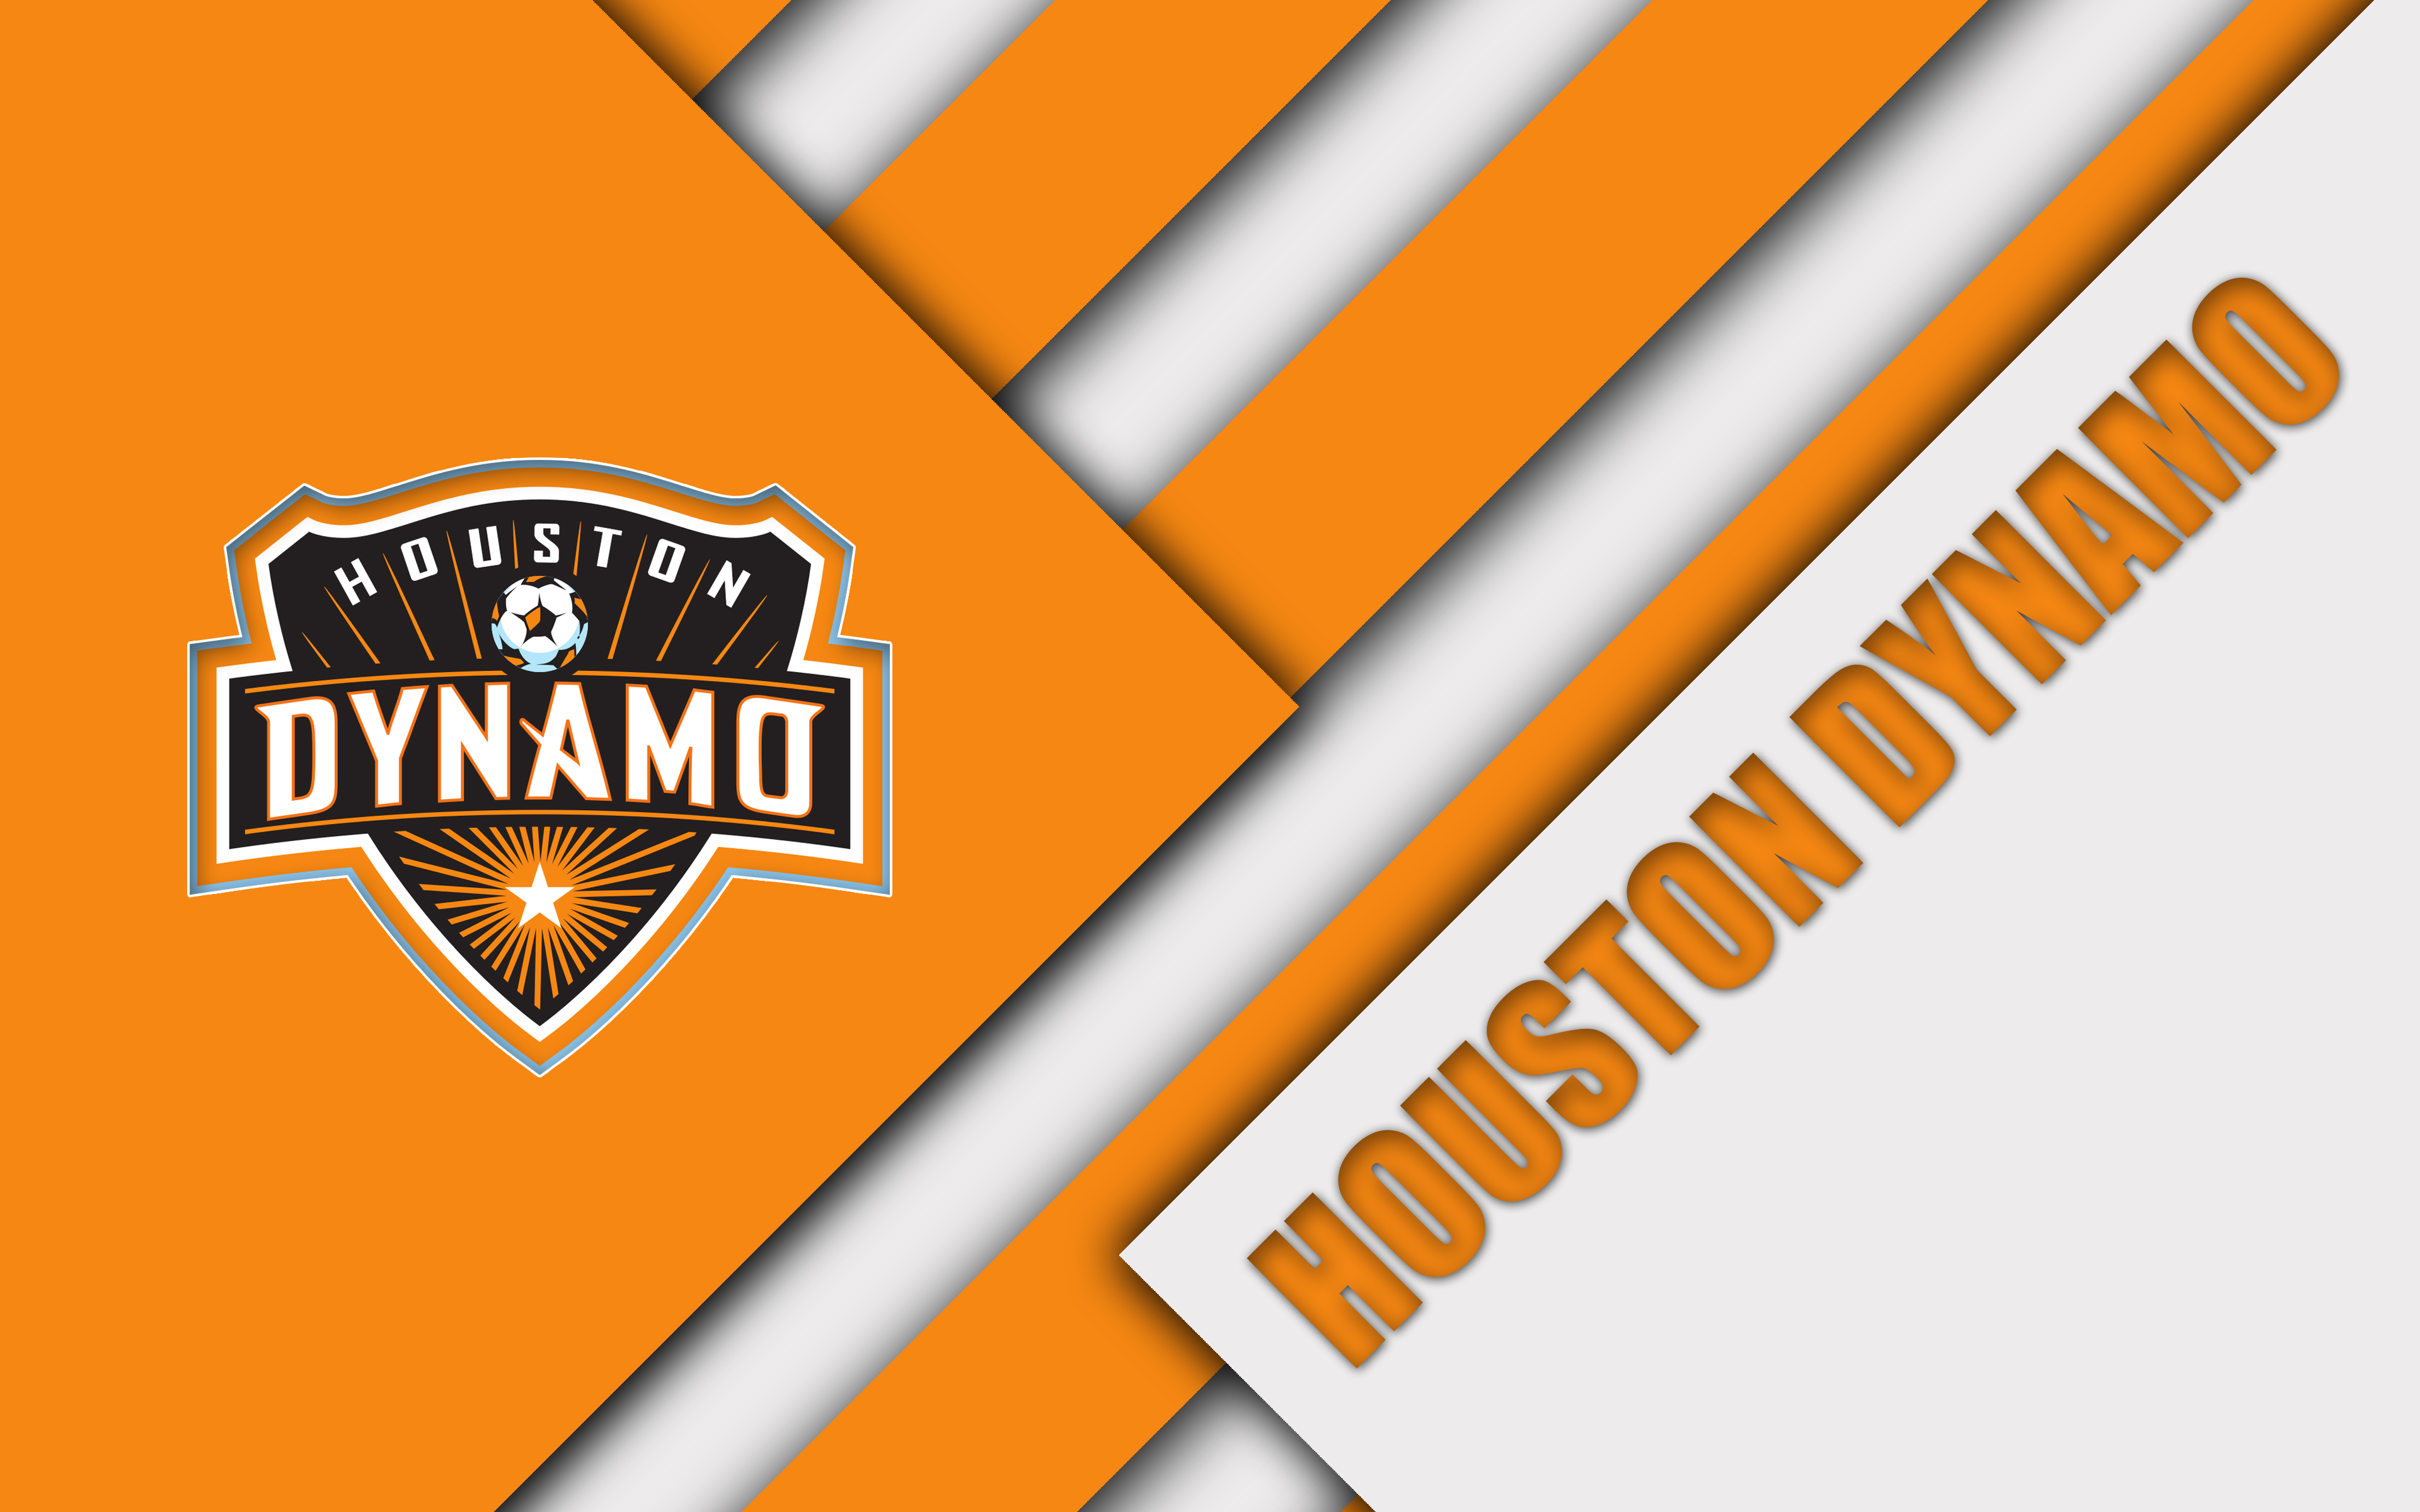 Houston Dynamo, Emblem, Logo, MLS, Soccer wallpapers and backgrounds